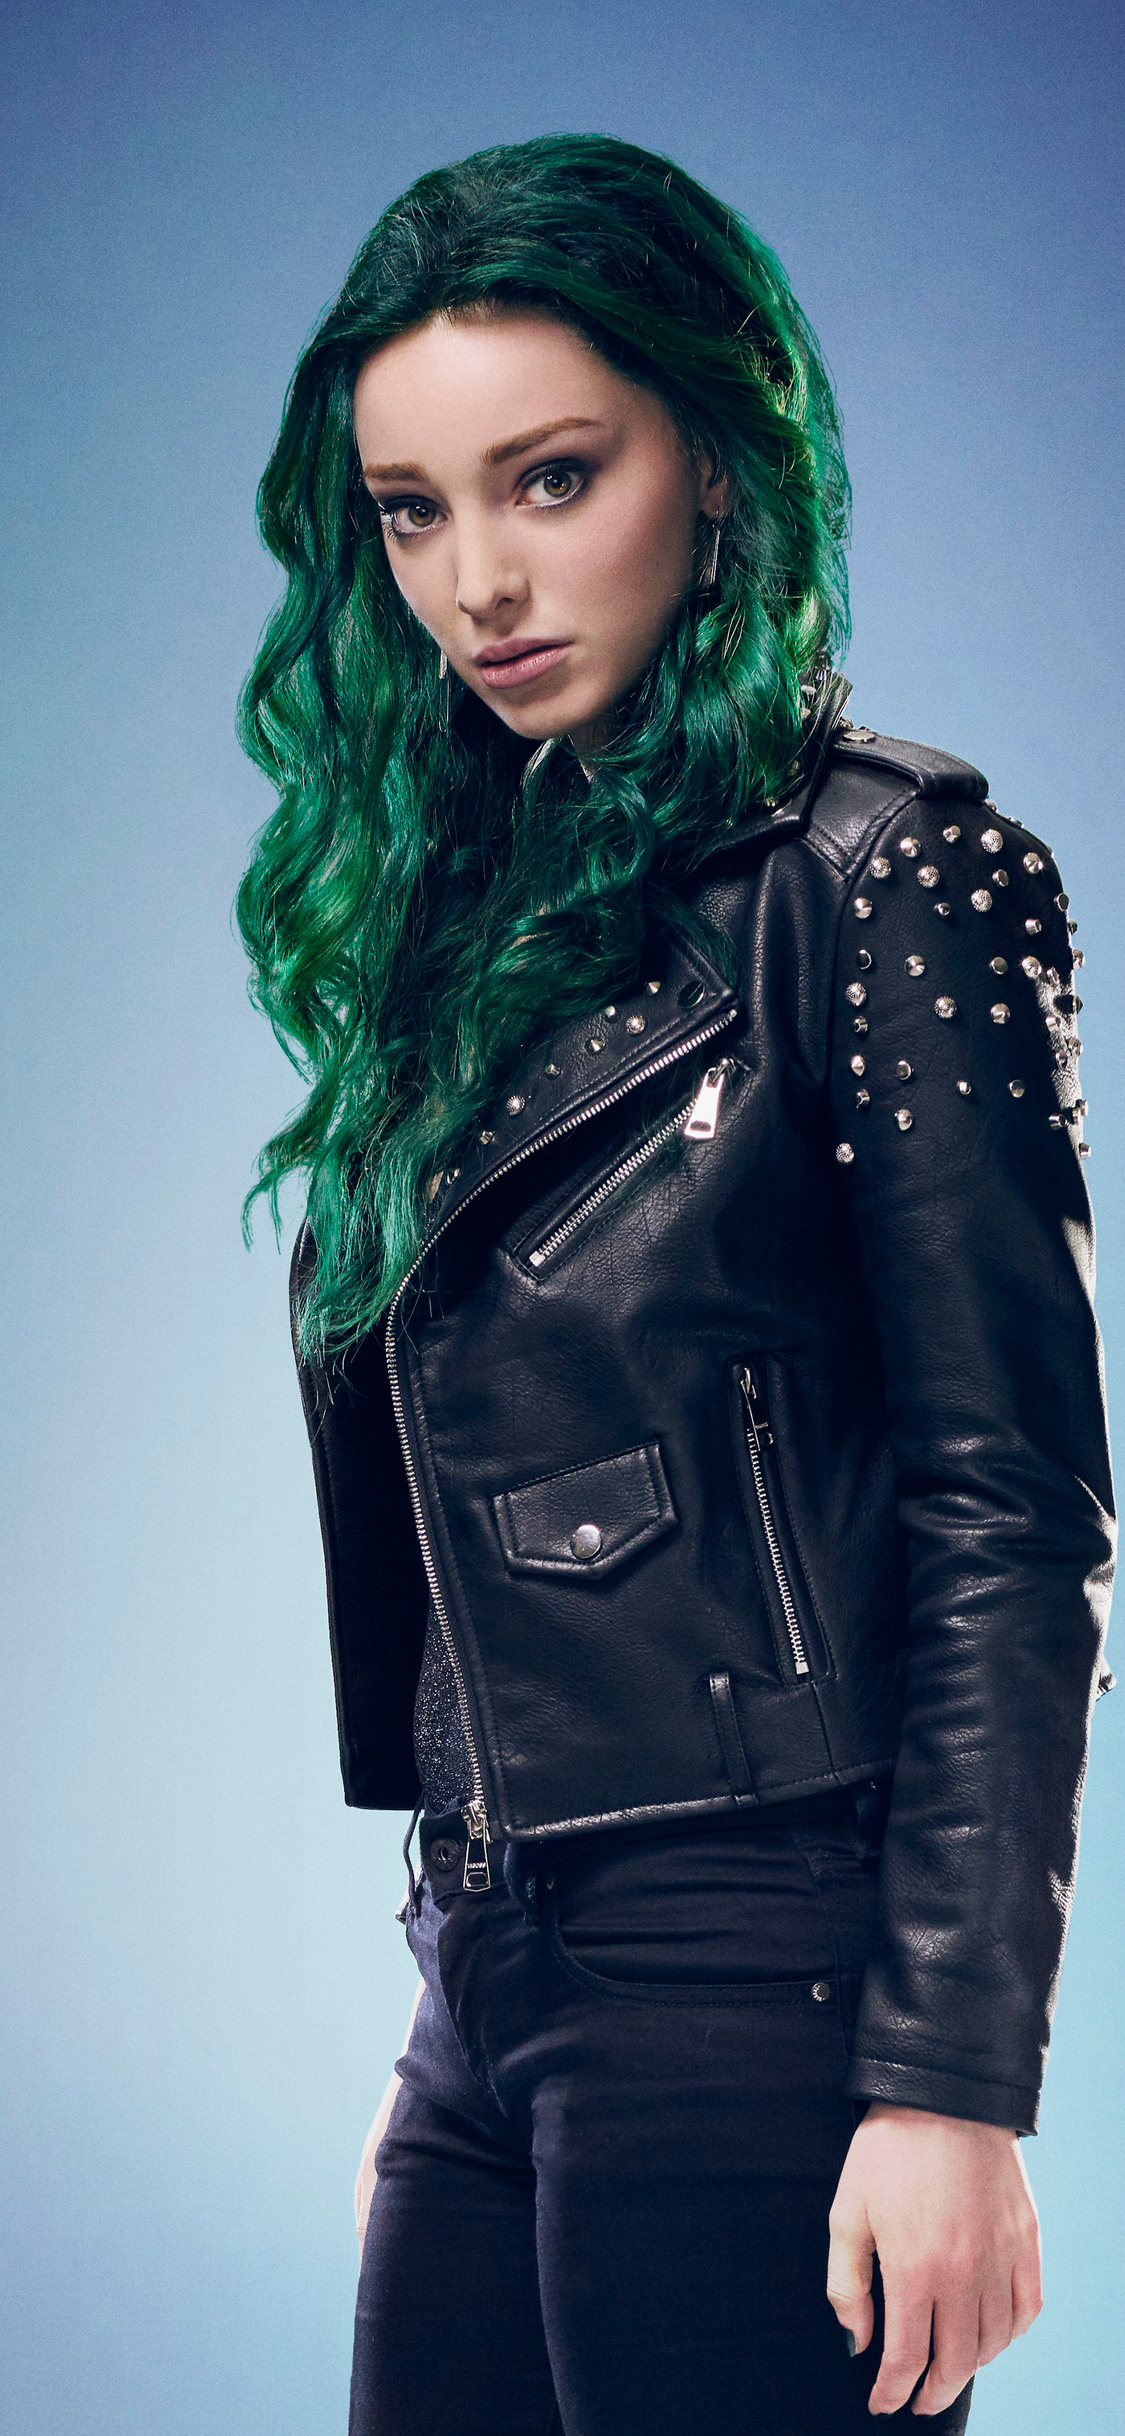 1125x2436 Emma Dumont As Polaris In The Gifted Season 2 2018